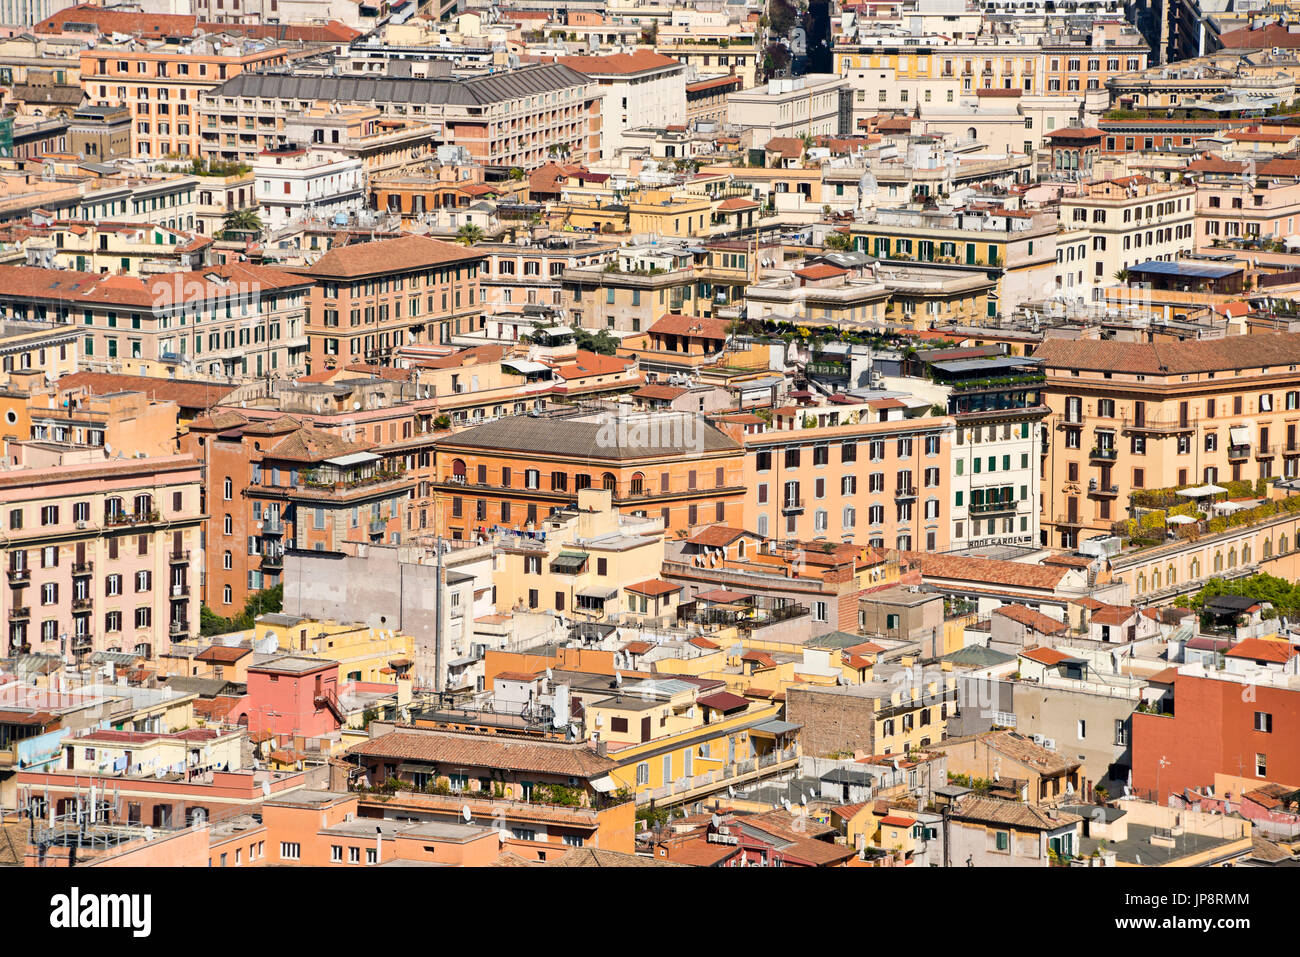 Horizontal aerial cityscape across the rooftops of Rome. - Stock Image